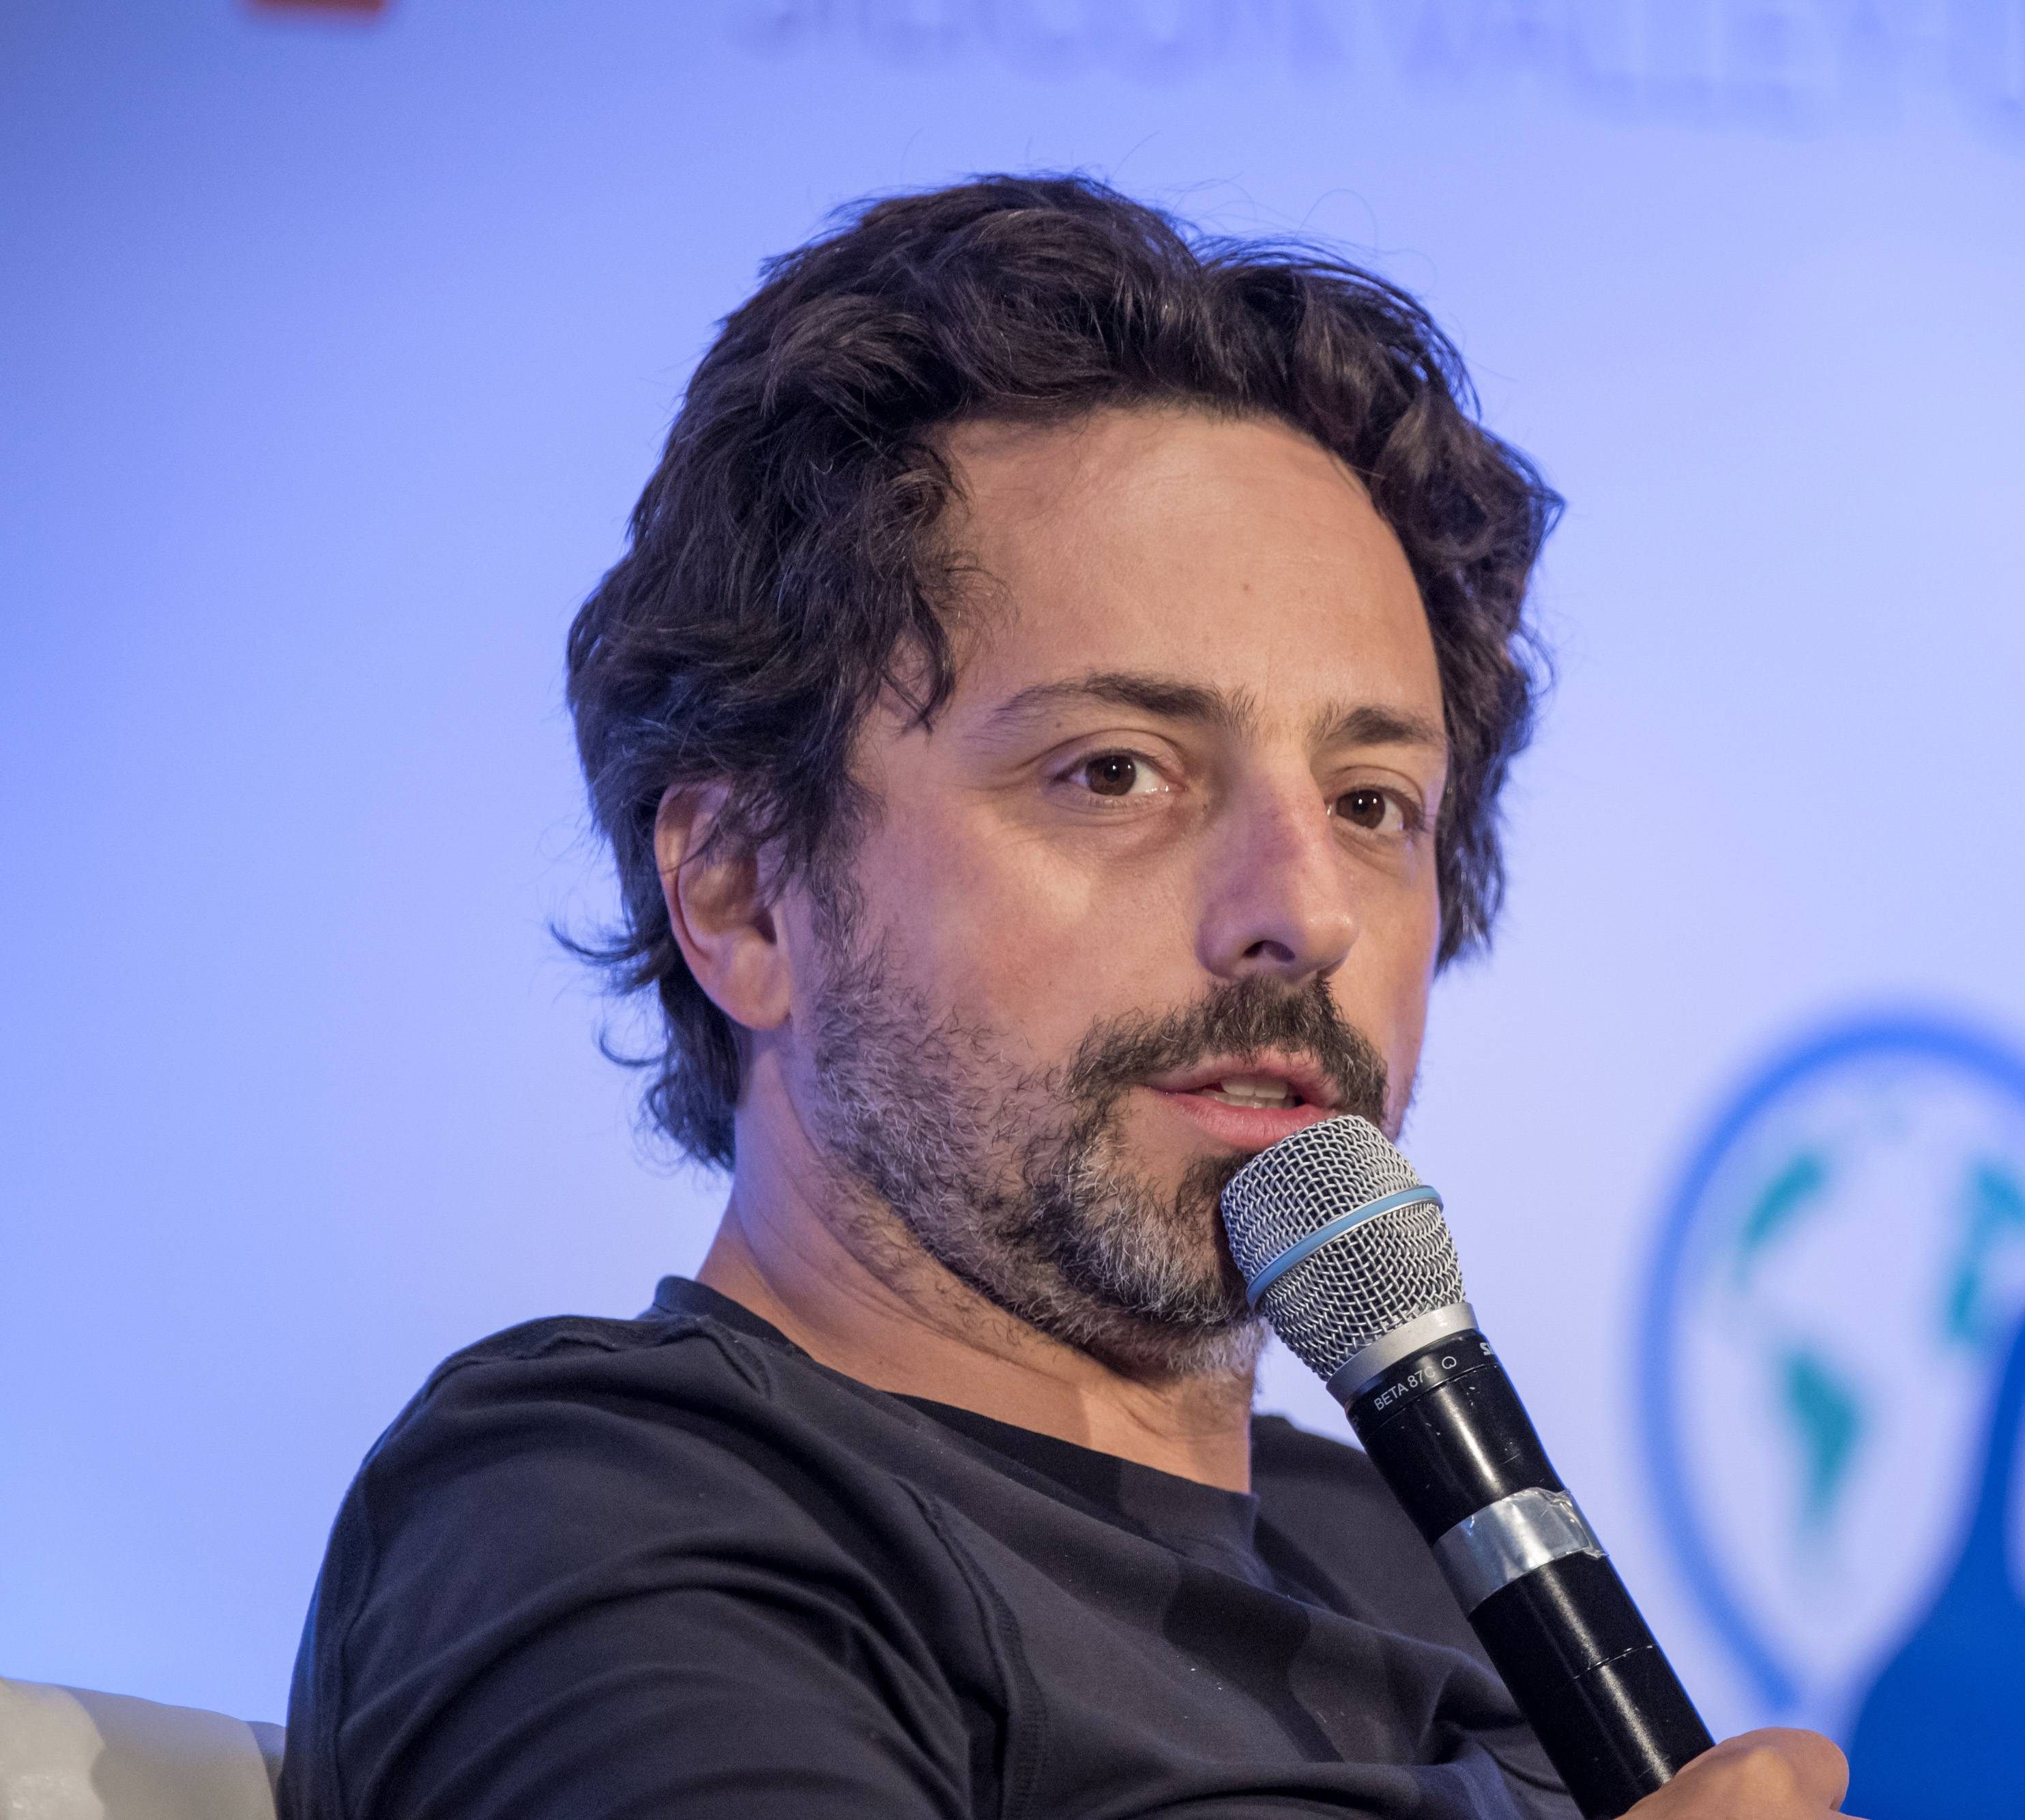 Sergey Brin, president of Alphabet and co-founder of Google Inc., has secretly been building a massive airship inside of Hangar 2 at the NASA Ames Research Center, according to four people with knowledge of the project.